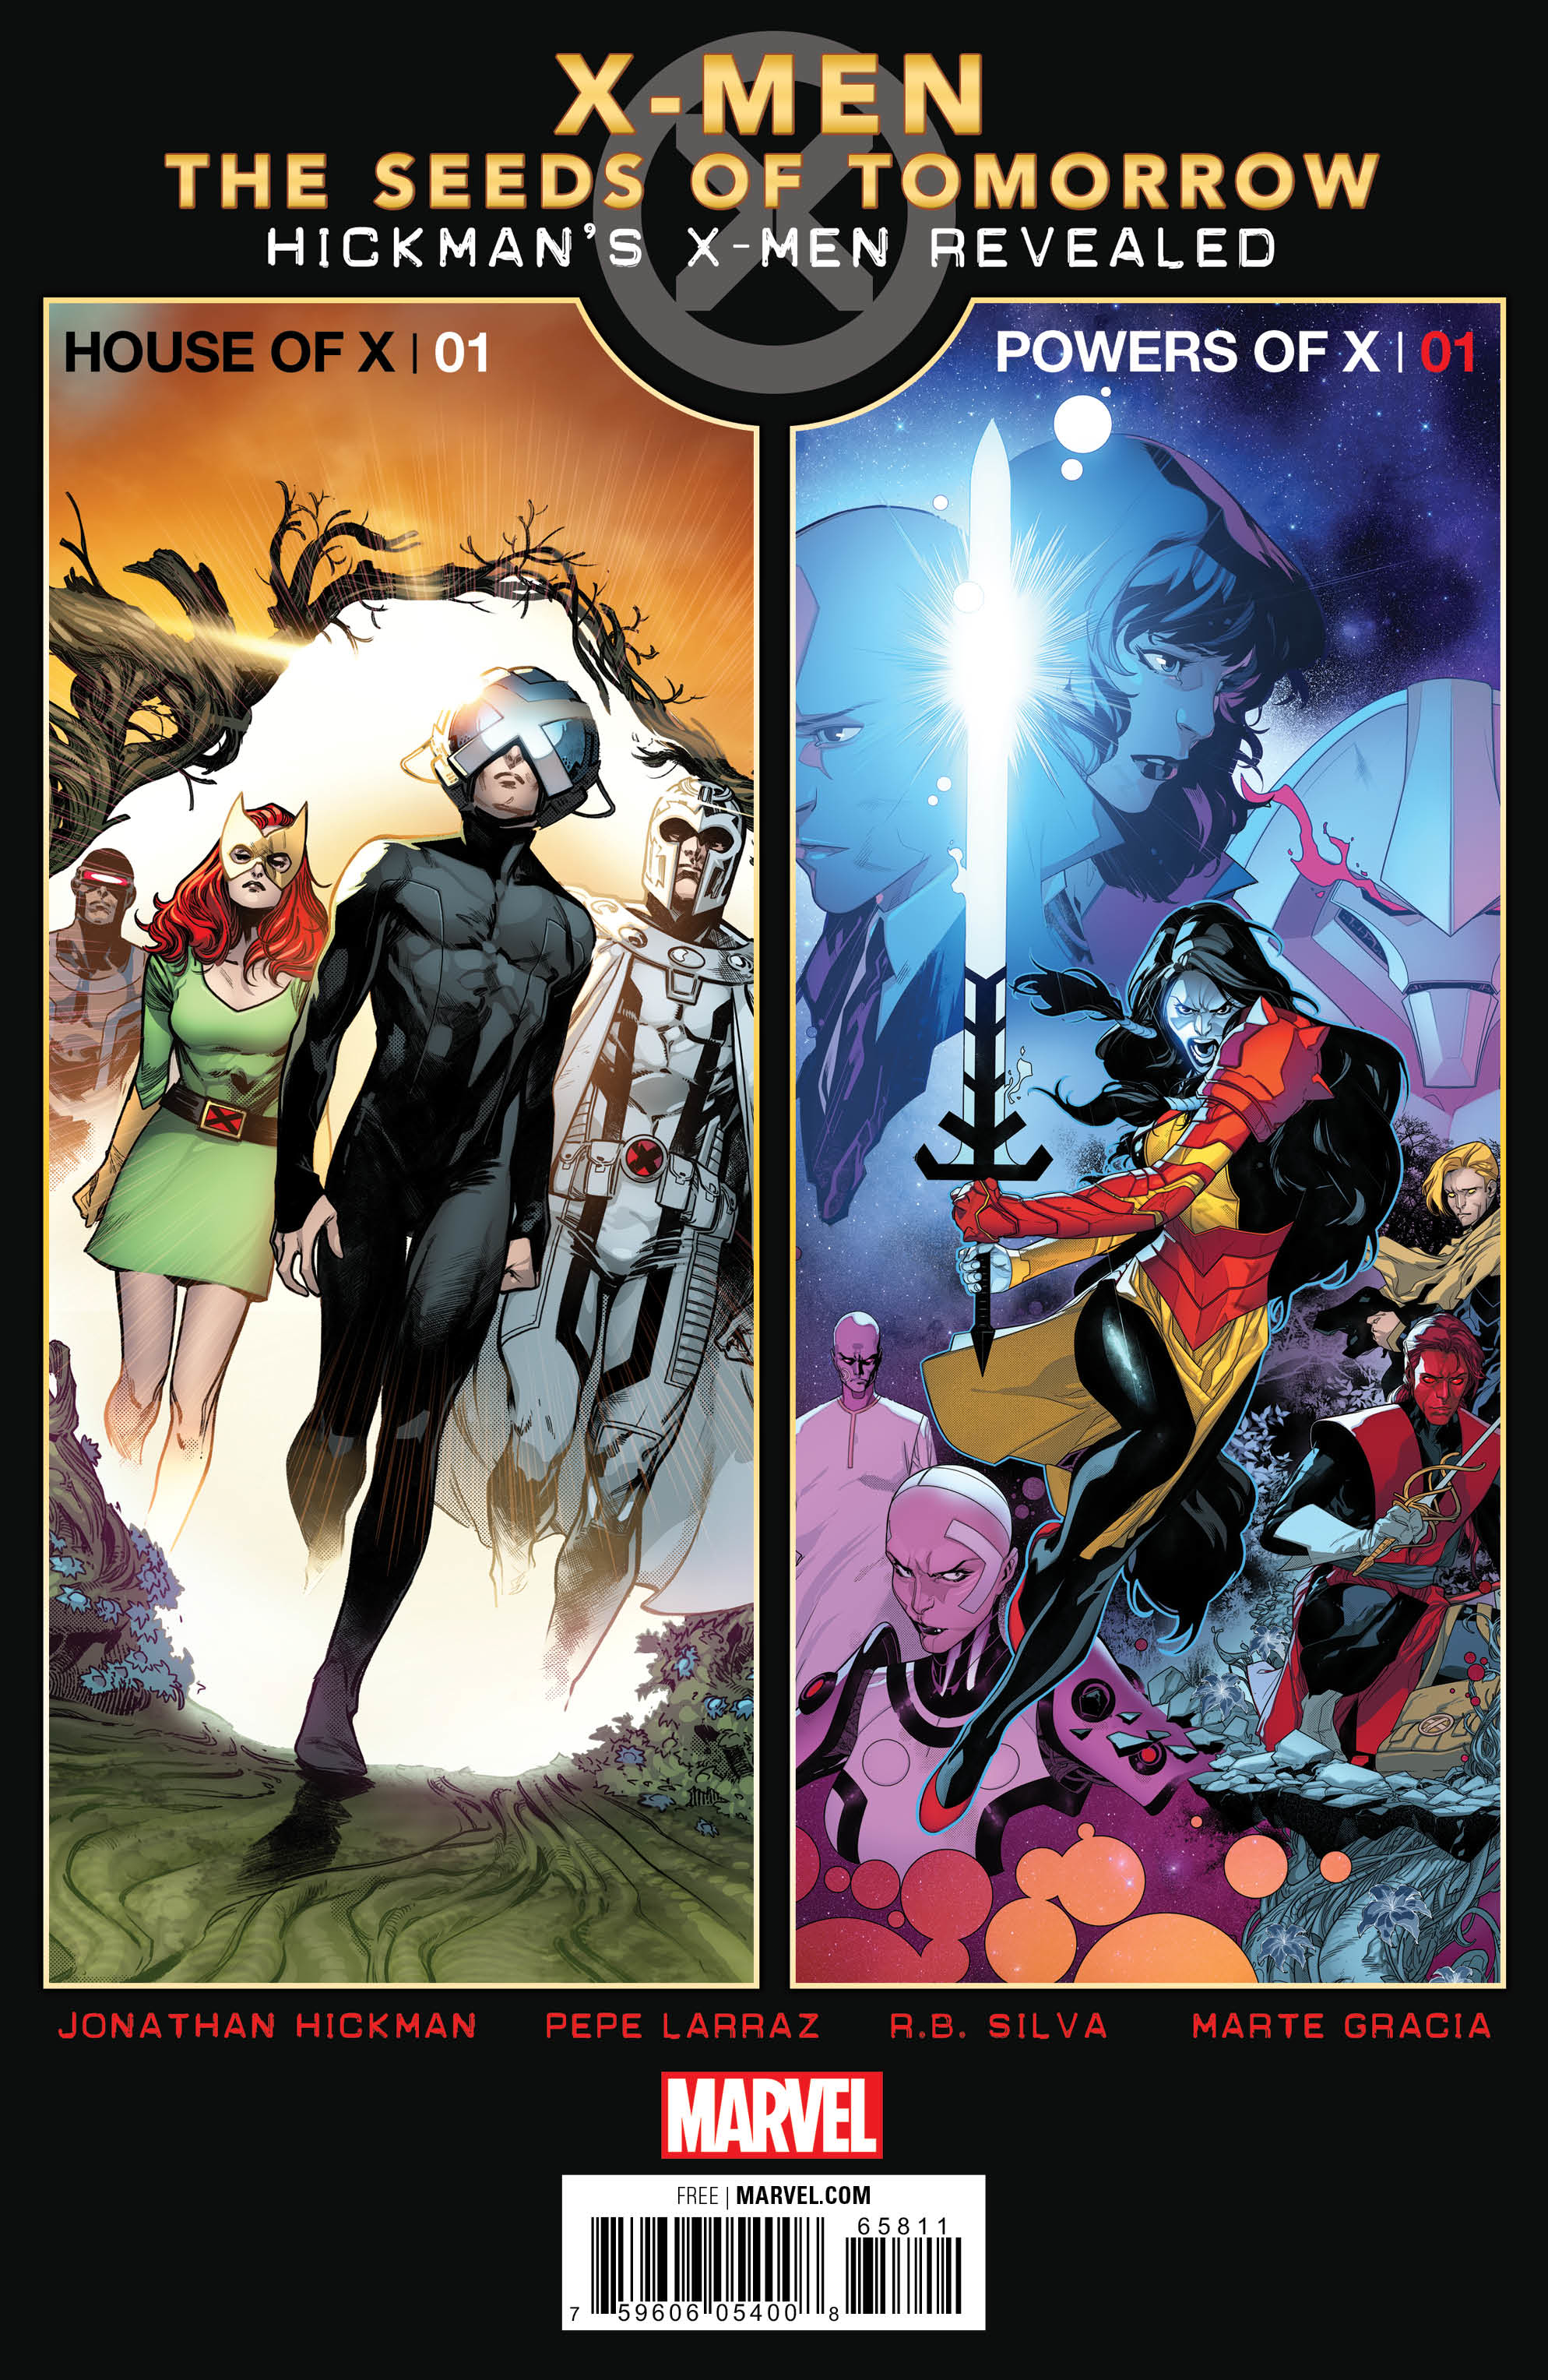 HOUSE OF X POWERS OF X PREVIEWS (BUNDLE OF 25)